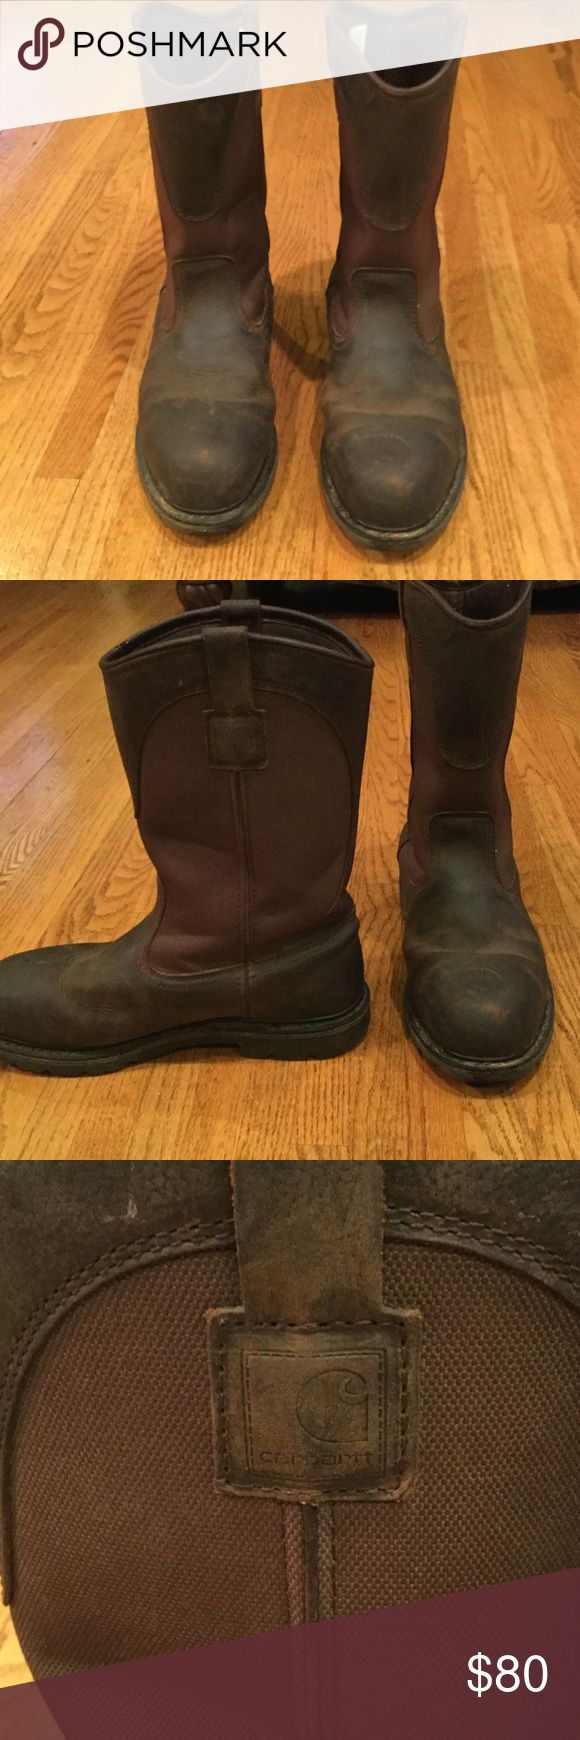 Carharrt Steel-toed boots Great condition, gently used! Leather steel toed. Carhartt Shoes Boots